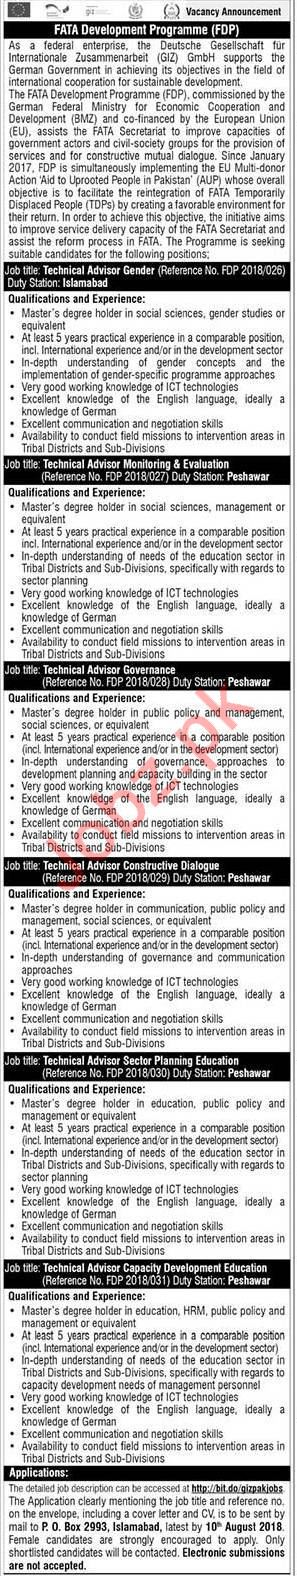 Giz Pakistan Technical Advisors NGO Jobs 2018